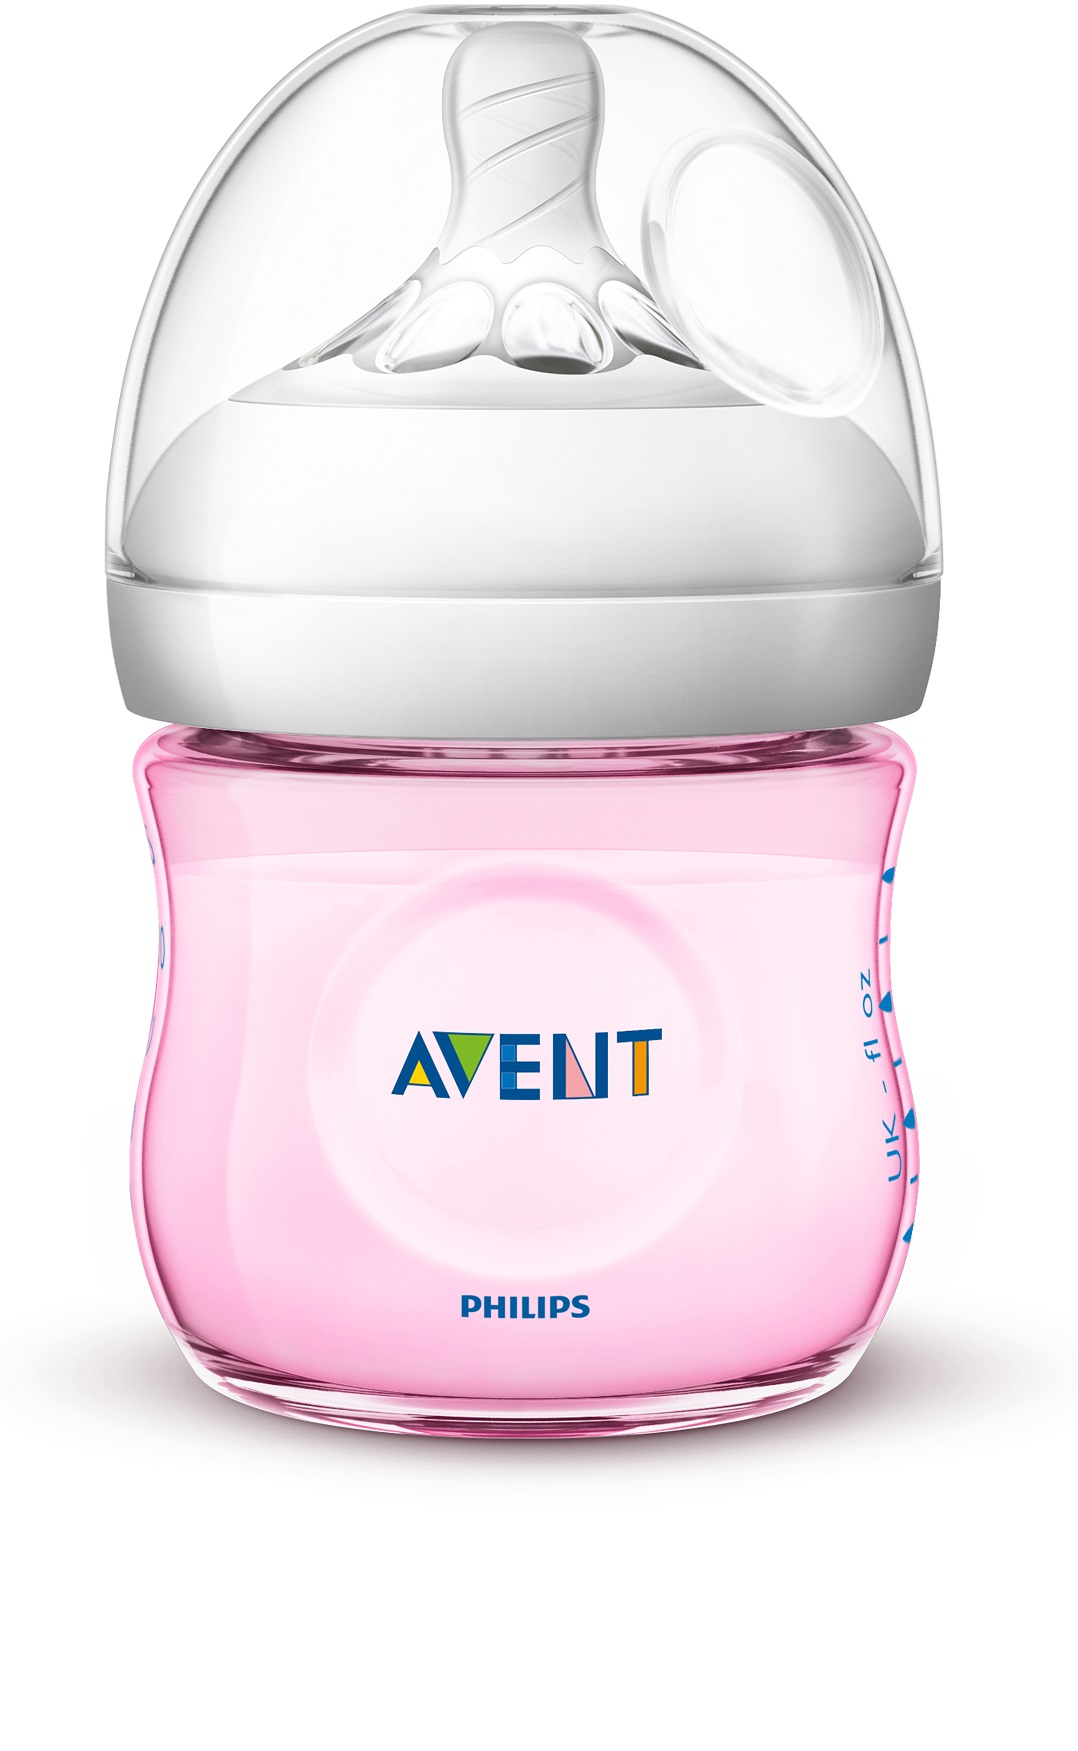 Lahev Natural Philips Avent 125 ml, 1 ks růžová nová